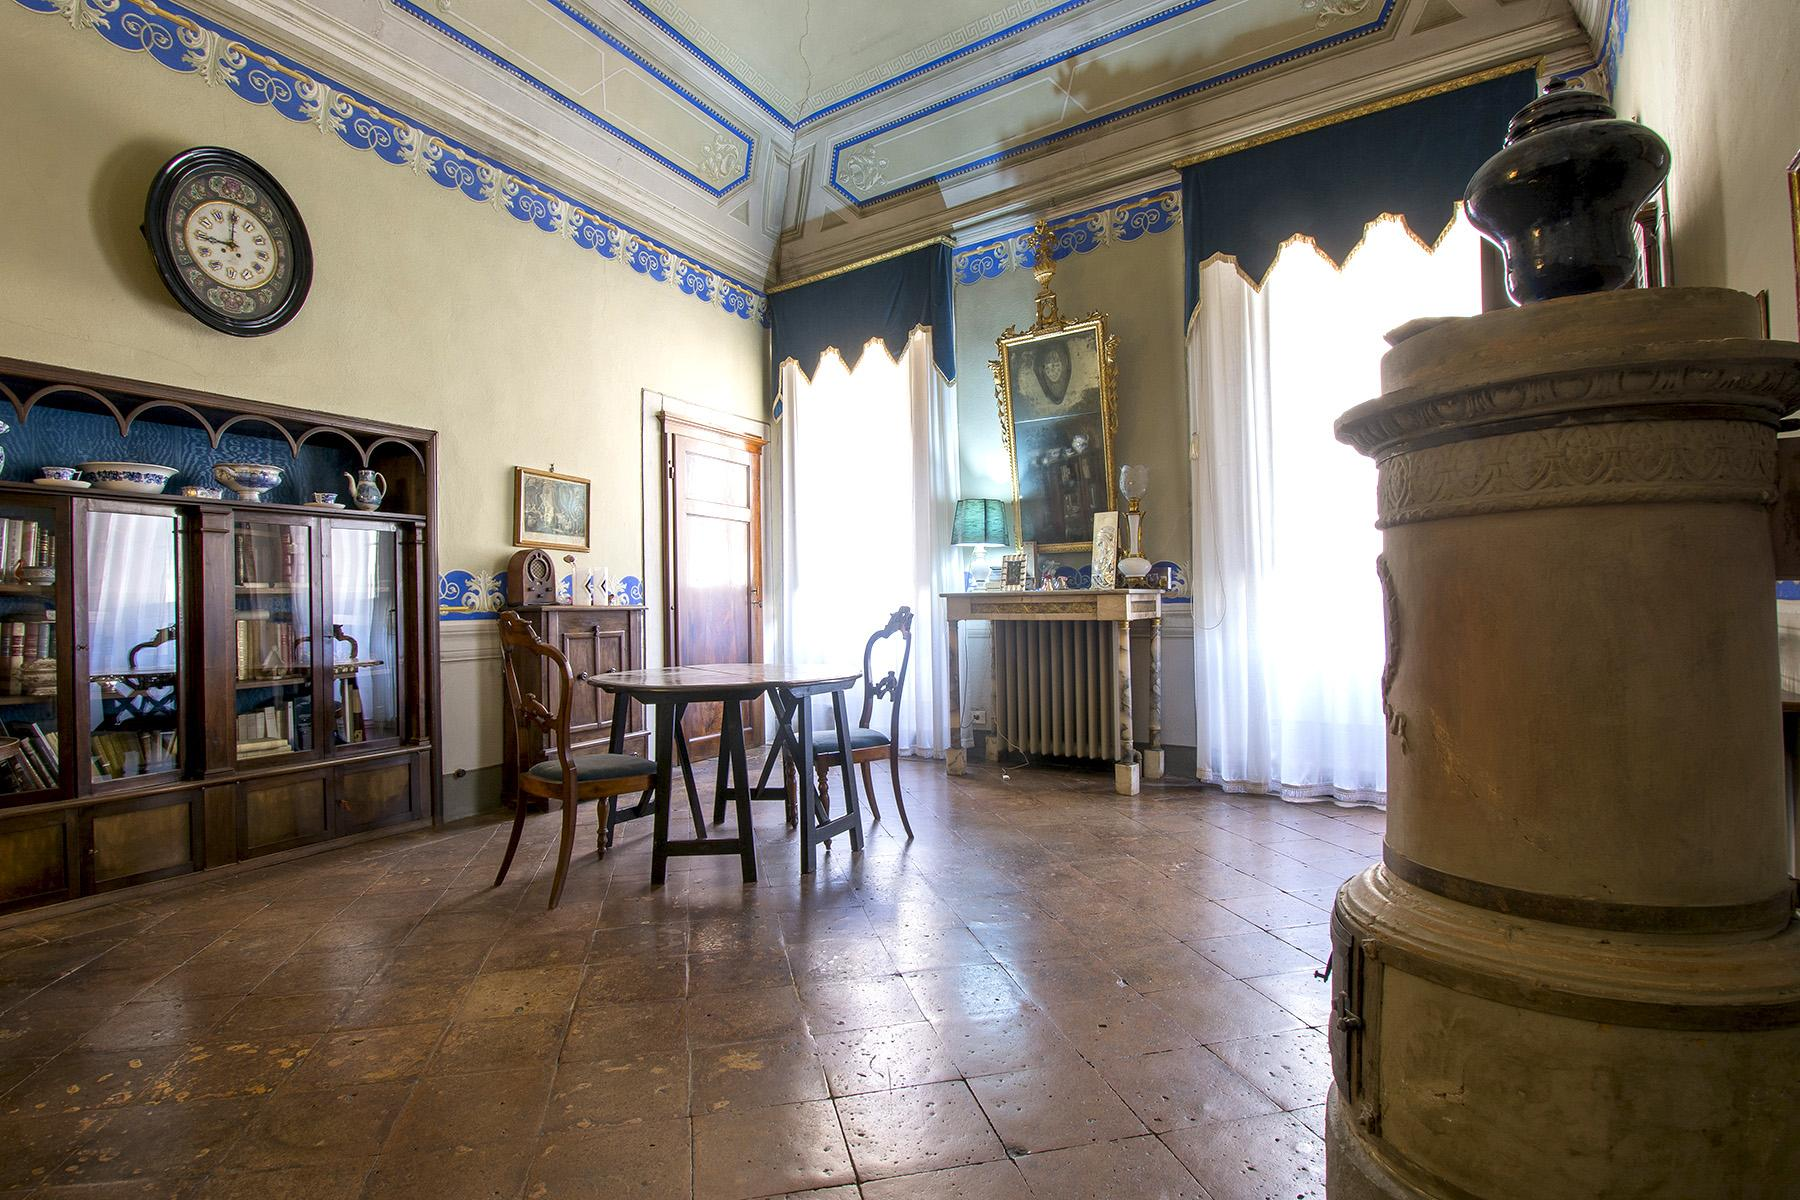 17th-century noble palace in the heart of Volterra - 13